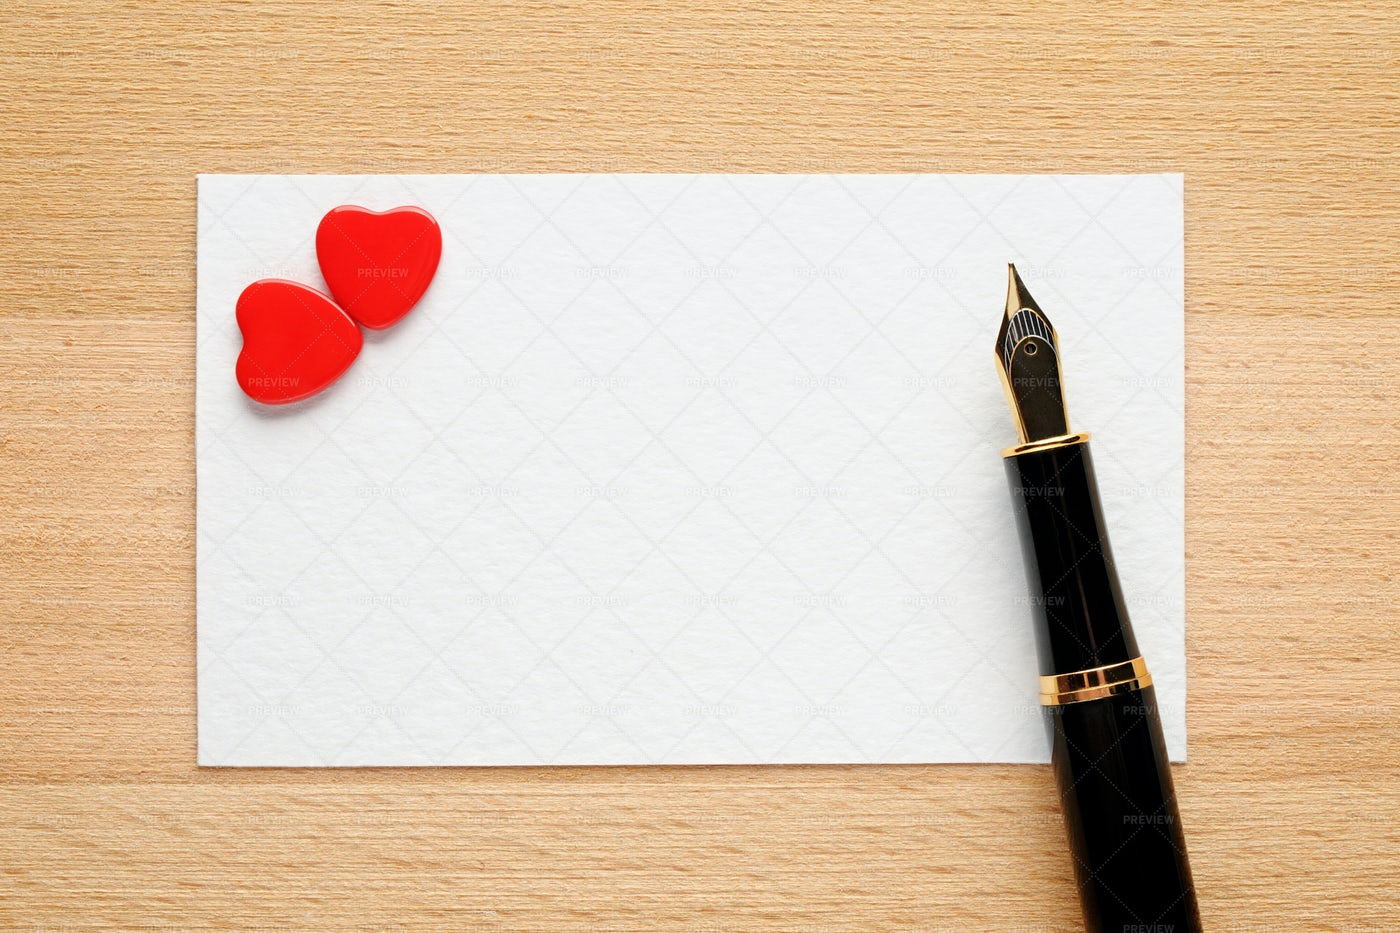 Blank Valentine Card With Hearts And Pen: Stock Photos